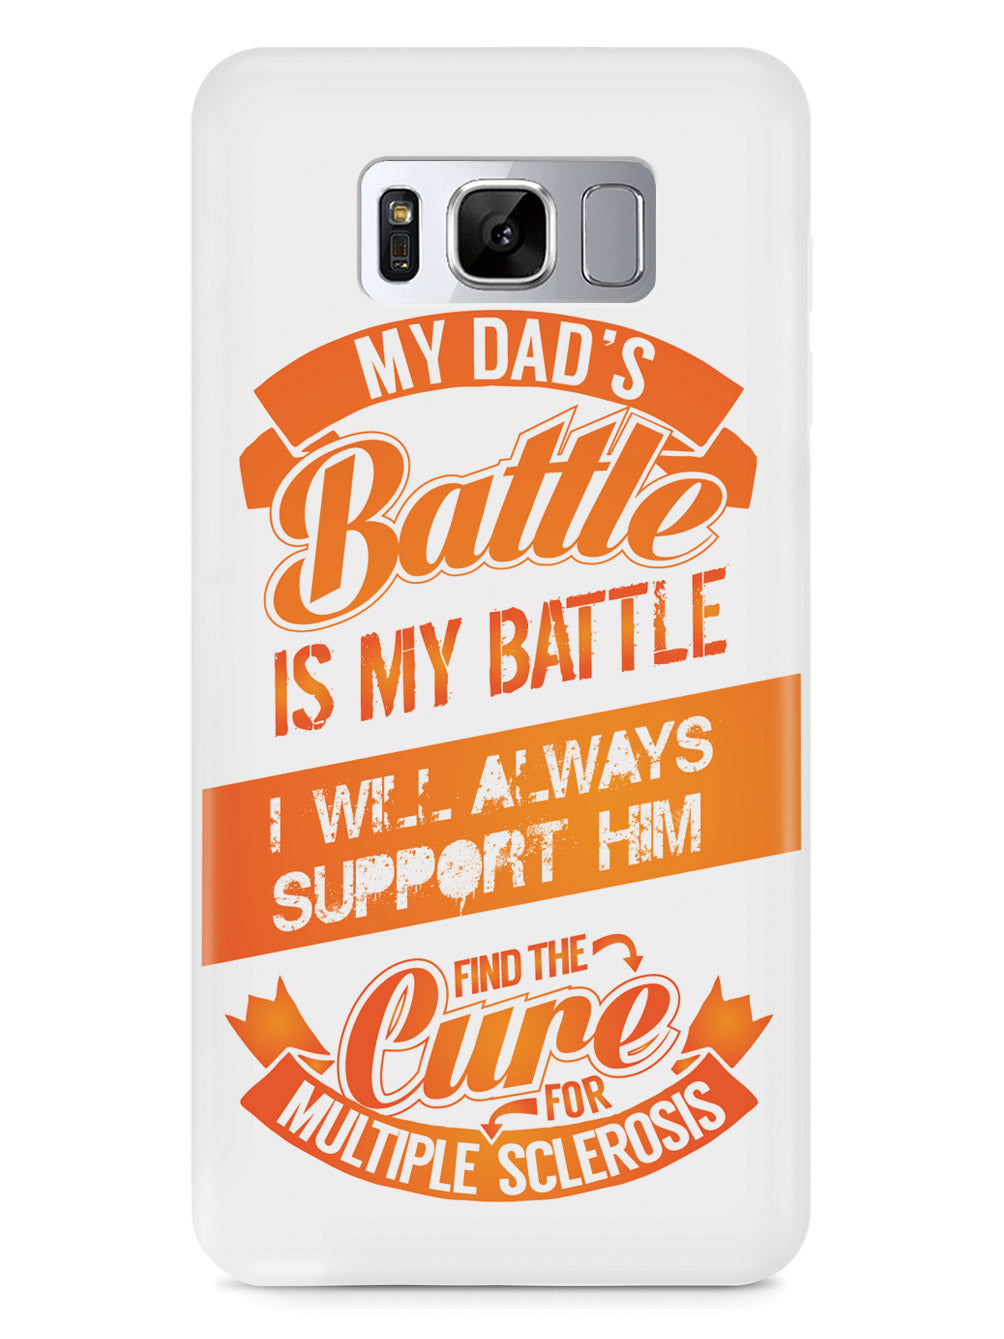 My Dad's Battle - Multiple Sclerosis Awareness/Support Case